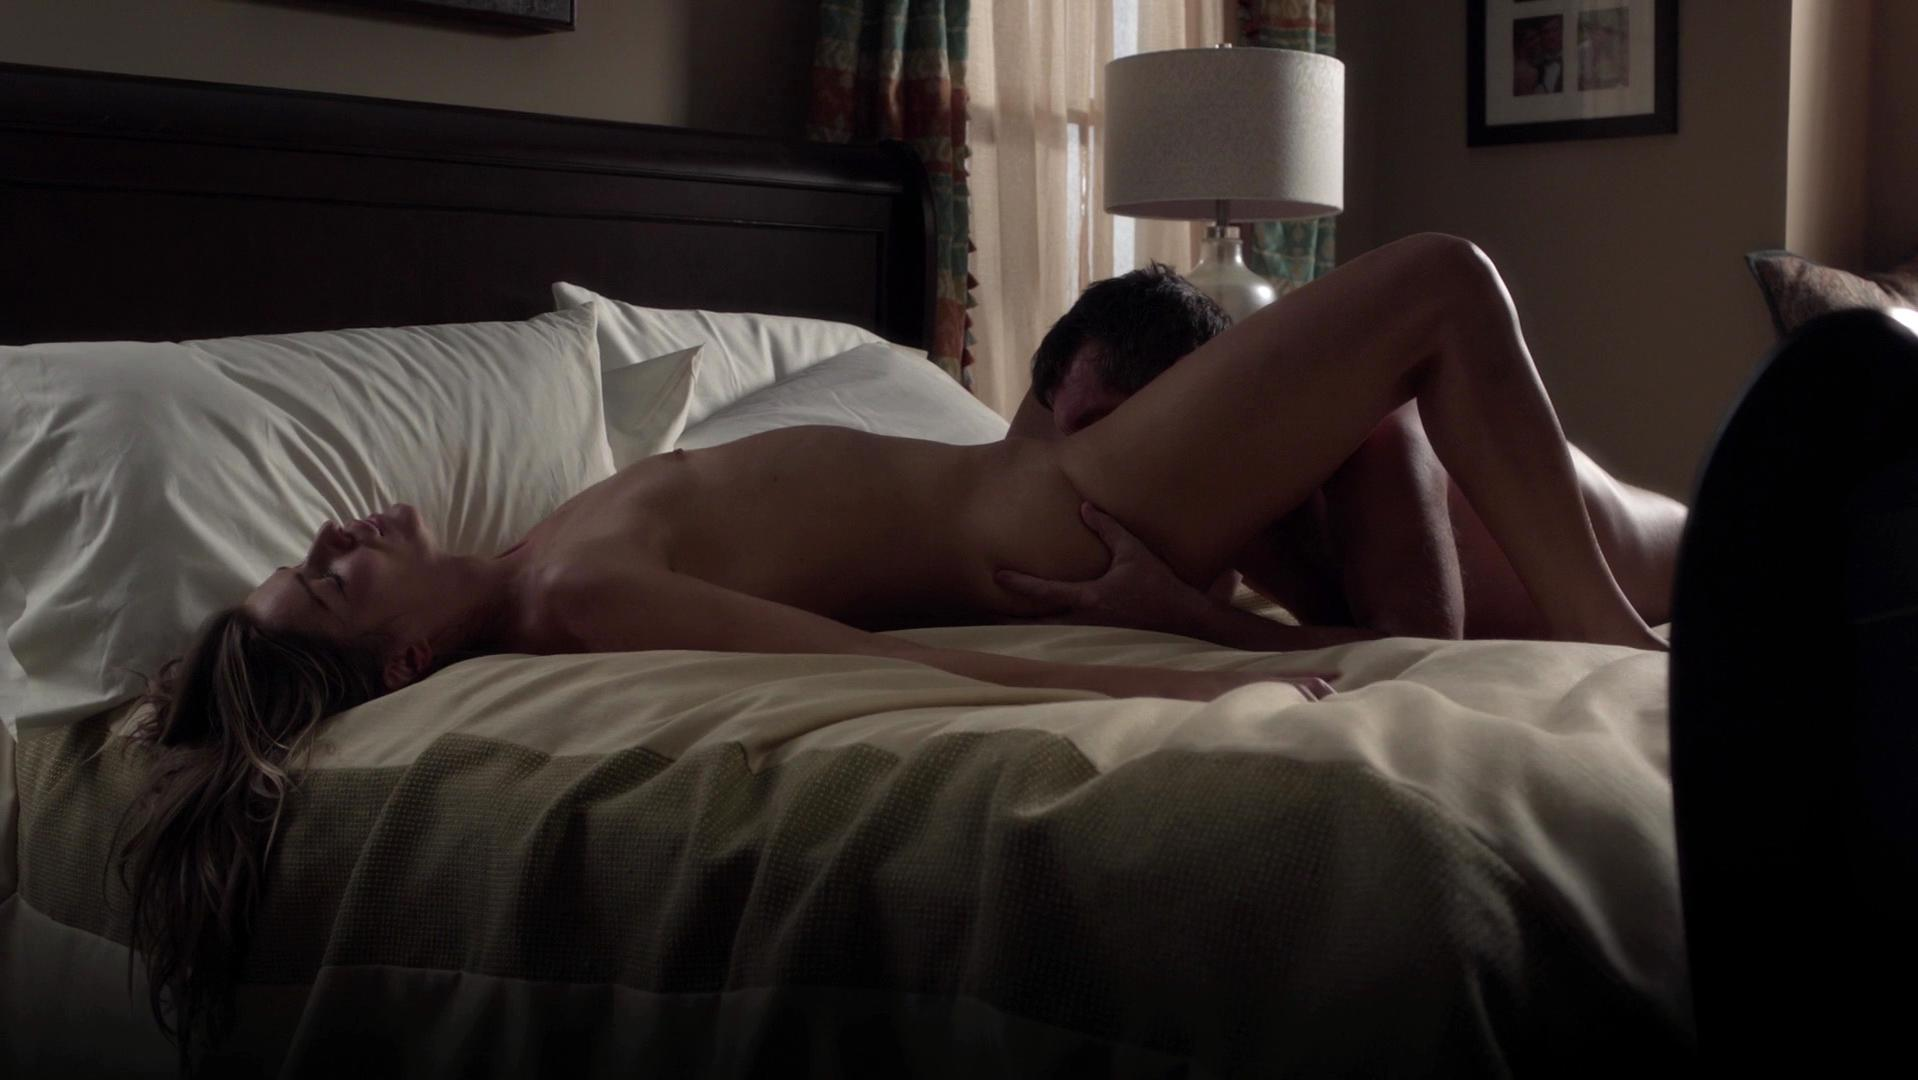 Ivana Milicevic nude, Wendy Michelle nude - Banshee s01e01 (2013)